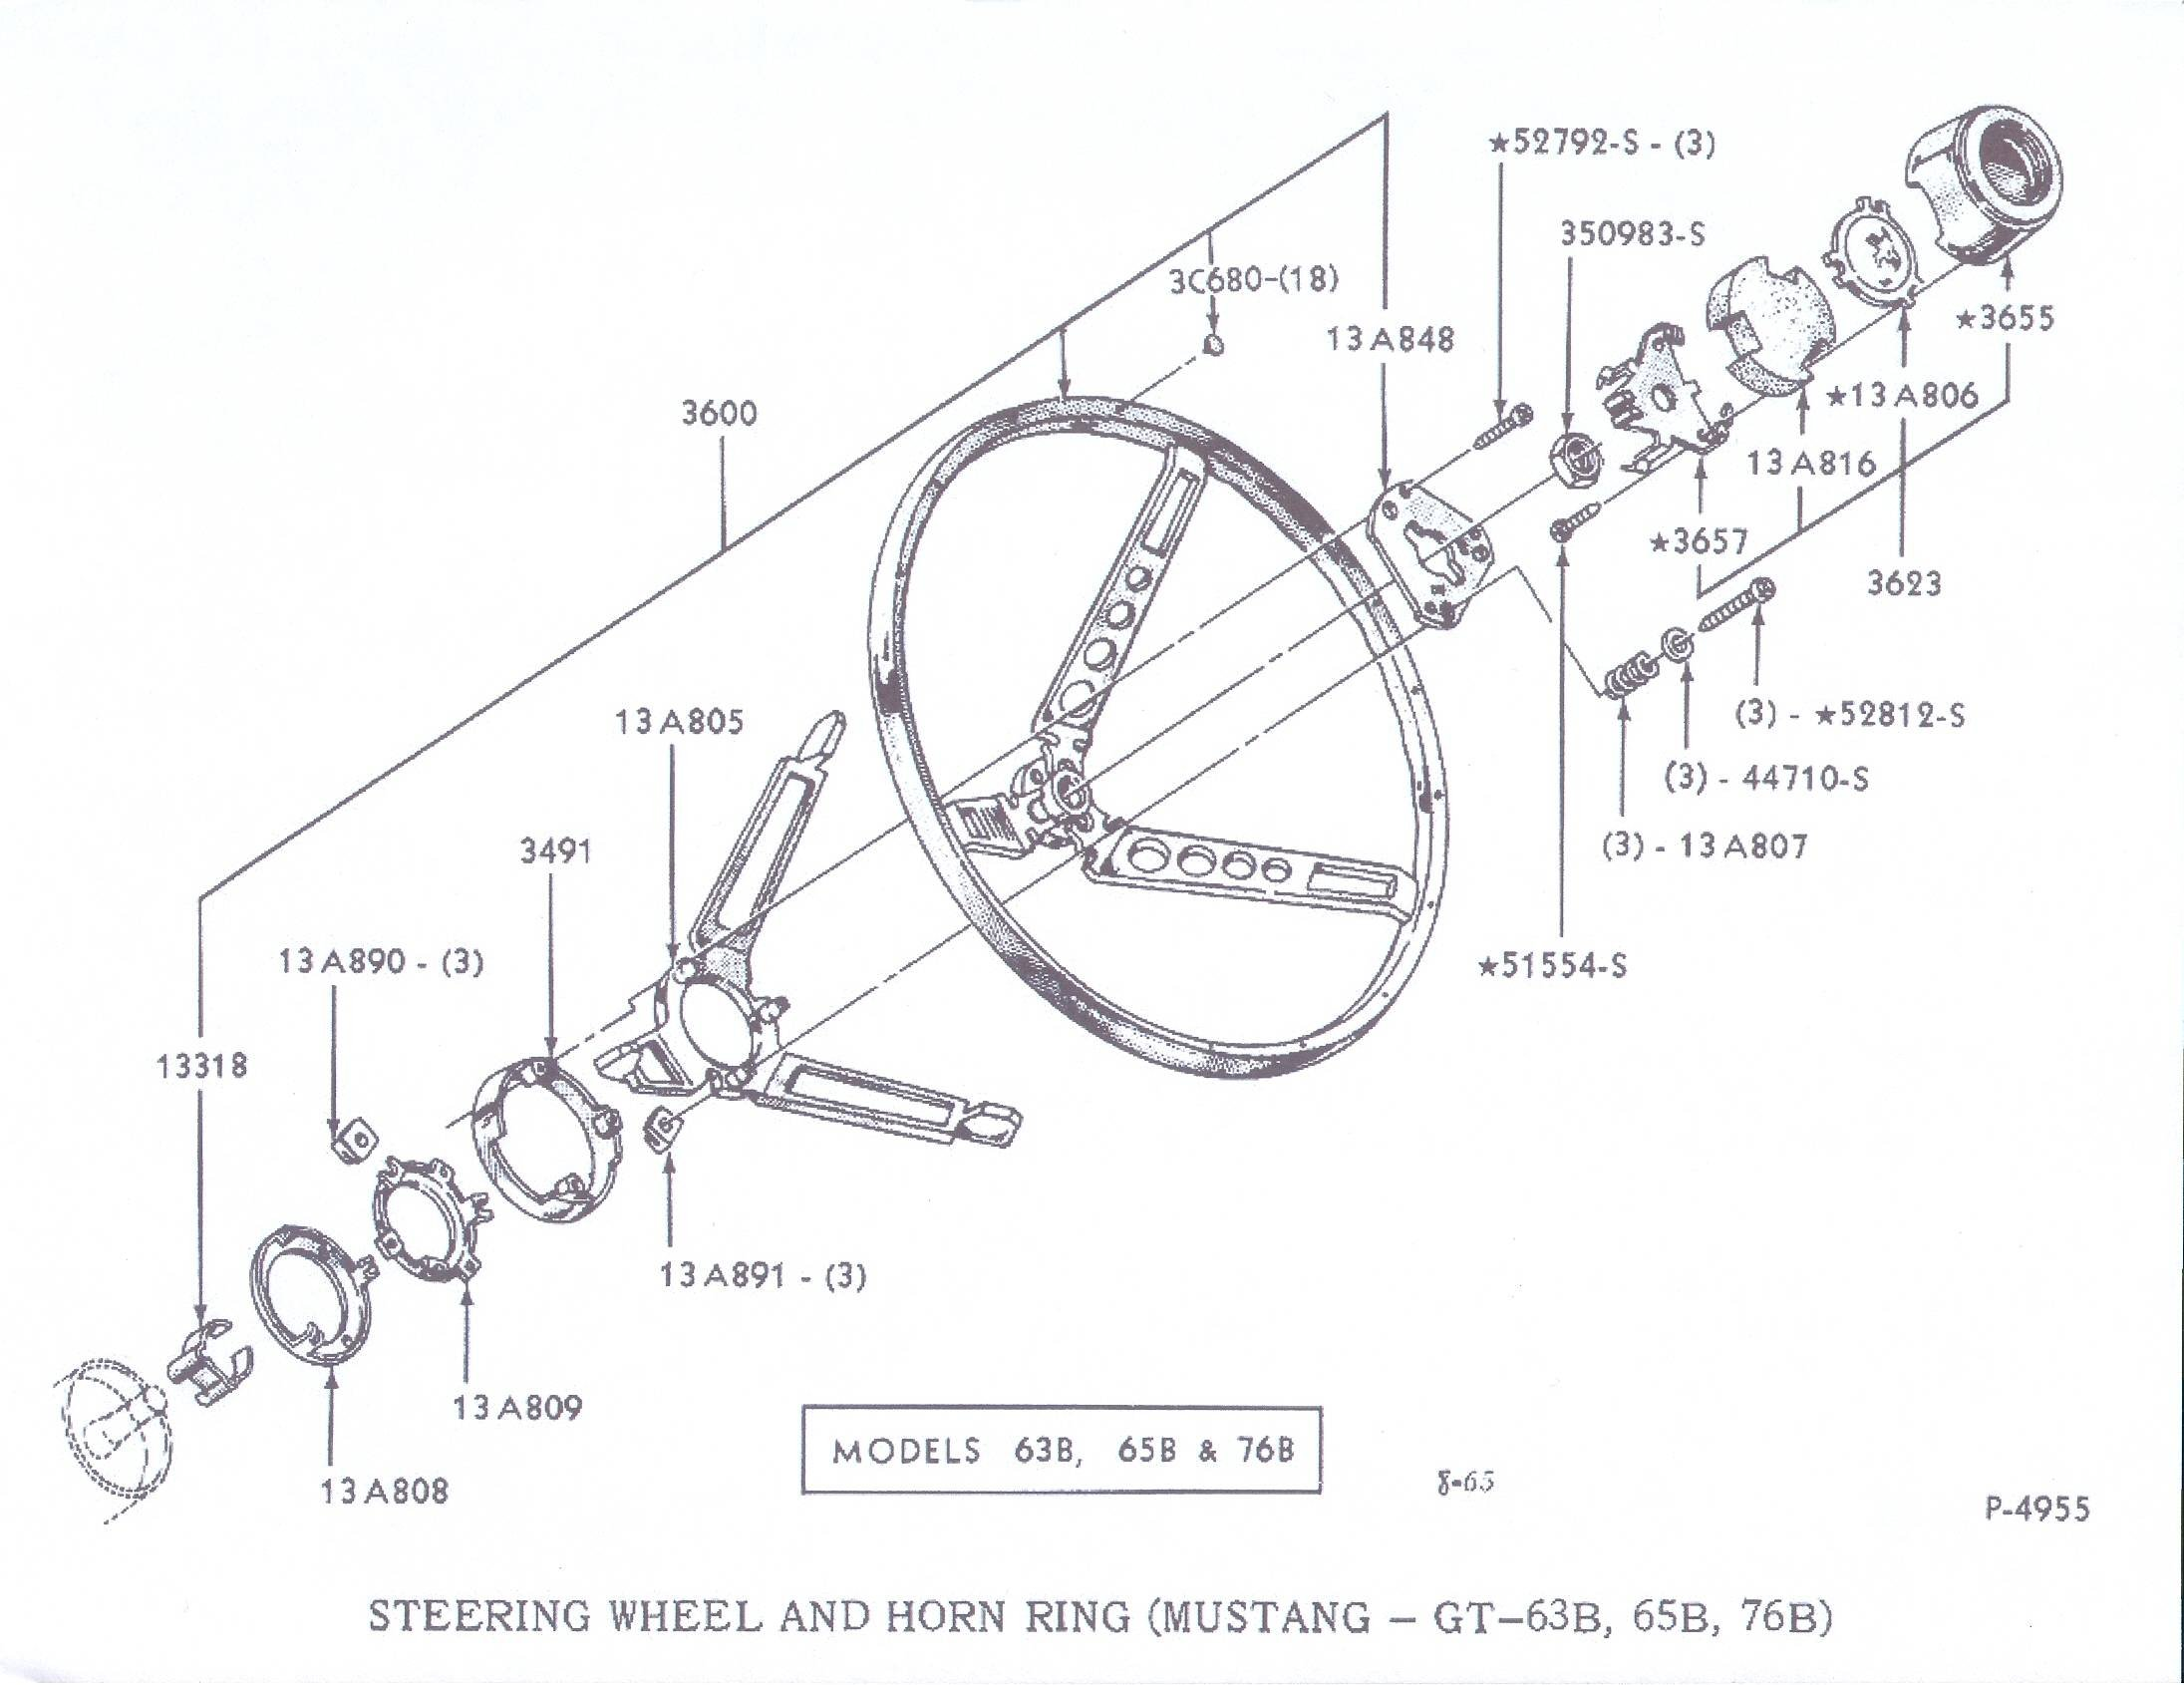 67 corvette wiring diagram 67 camaro wiring diagram 67 discover your wiring diagram collections 66 chevelle steering column diagram